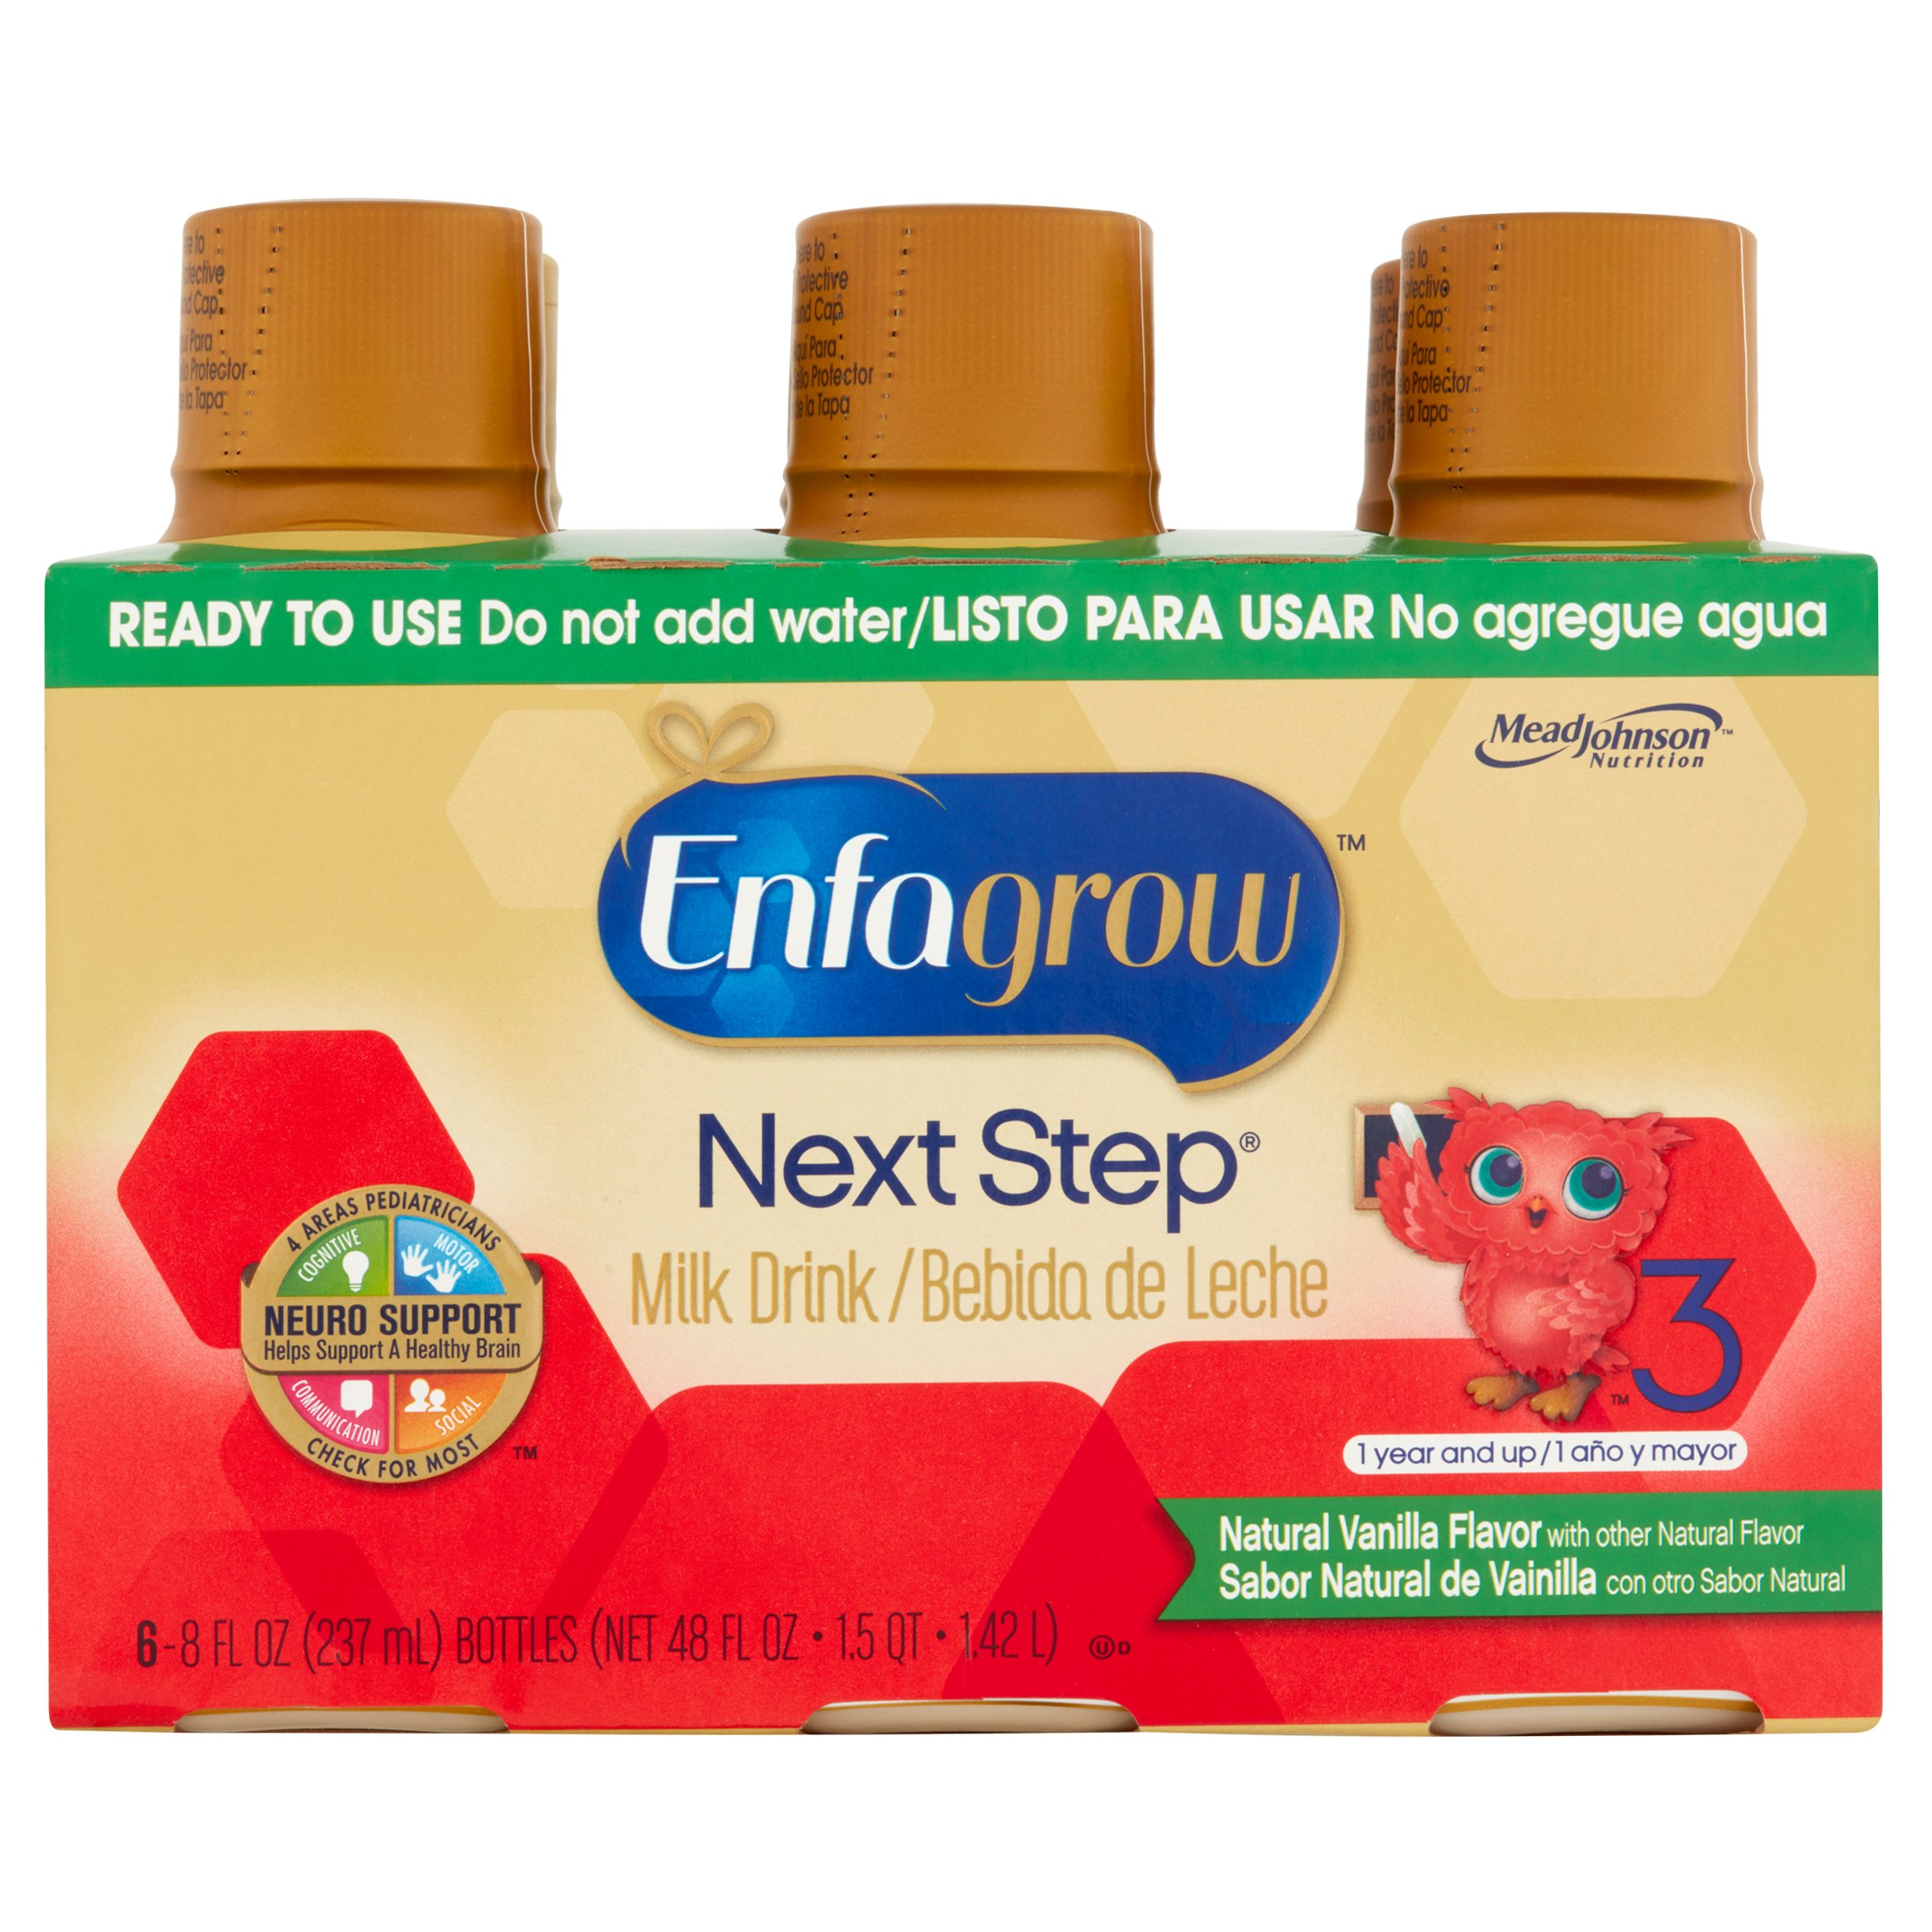 Enfagrow Toddler Next Step Vanilla (4 Pack) Milk Ready-to-Drink Milk Drink, 8 fl oz bottles, 6pk